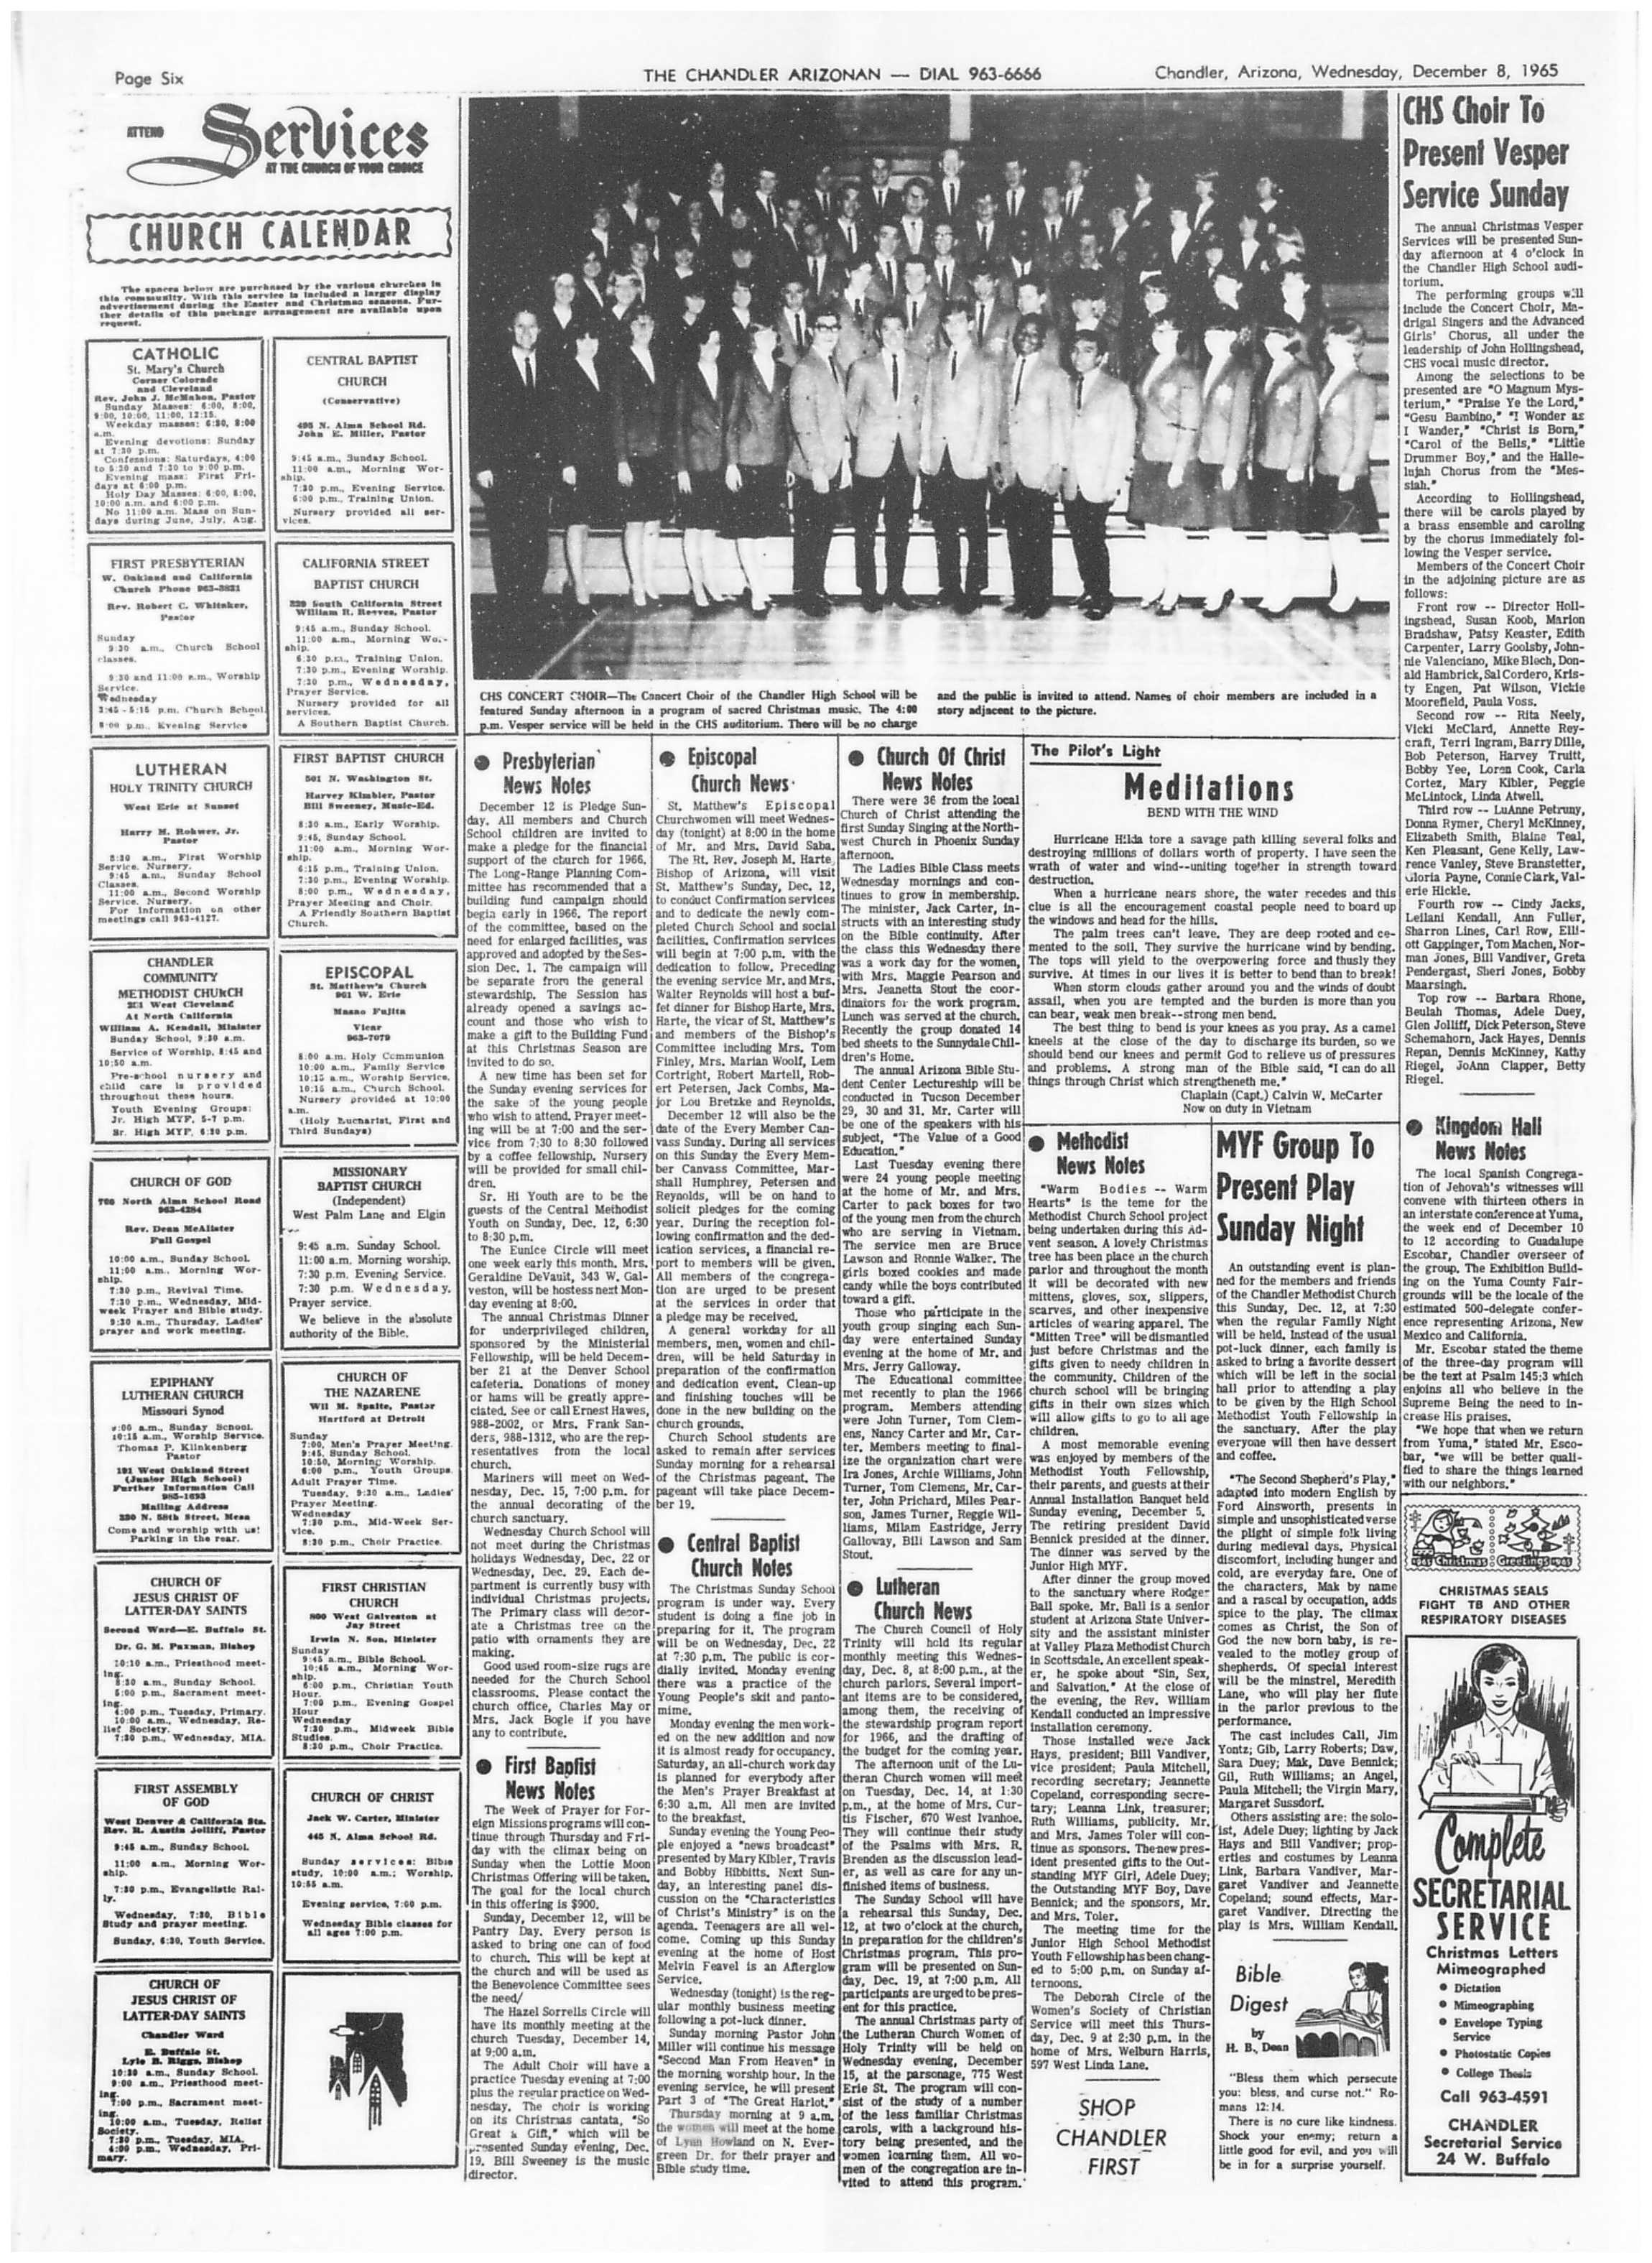 12-8-1965 - Page 6 .jpg